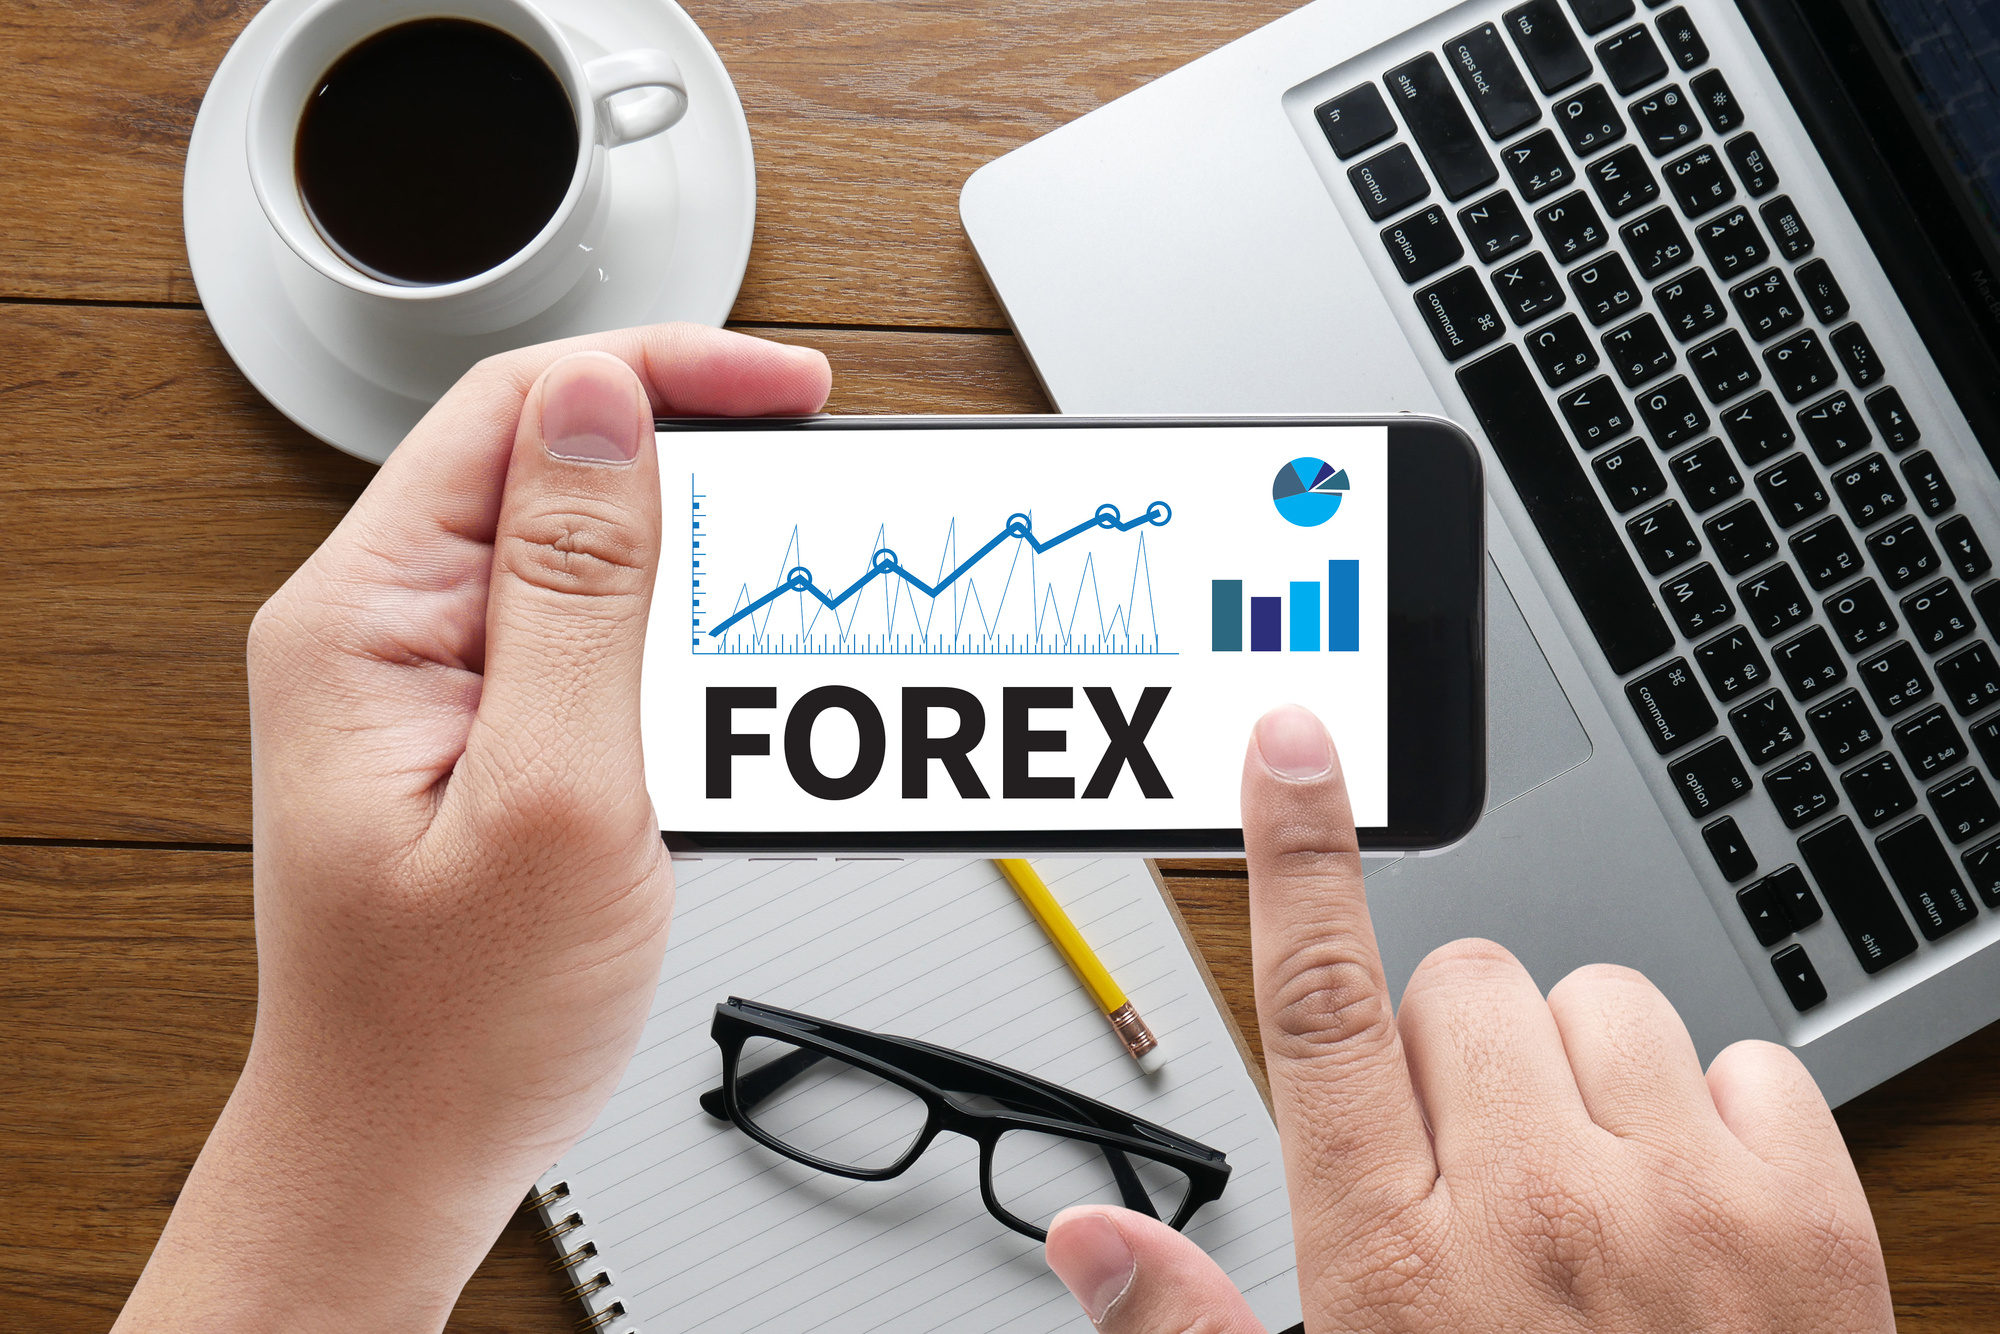 Learn How to Trade Forex in the UK with Trading Examples | IG UK